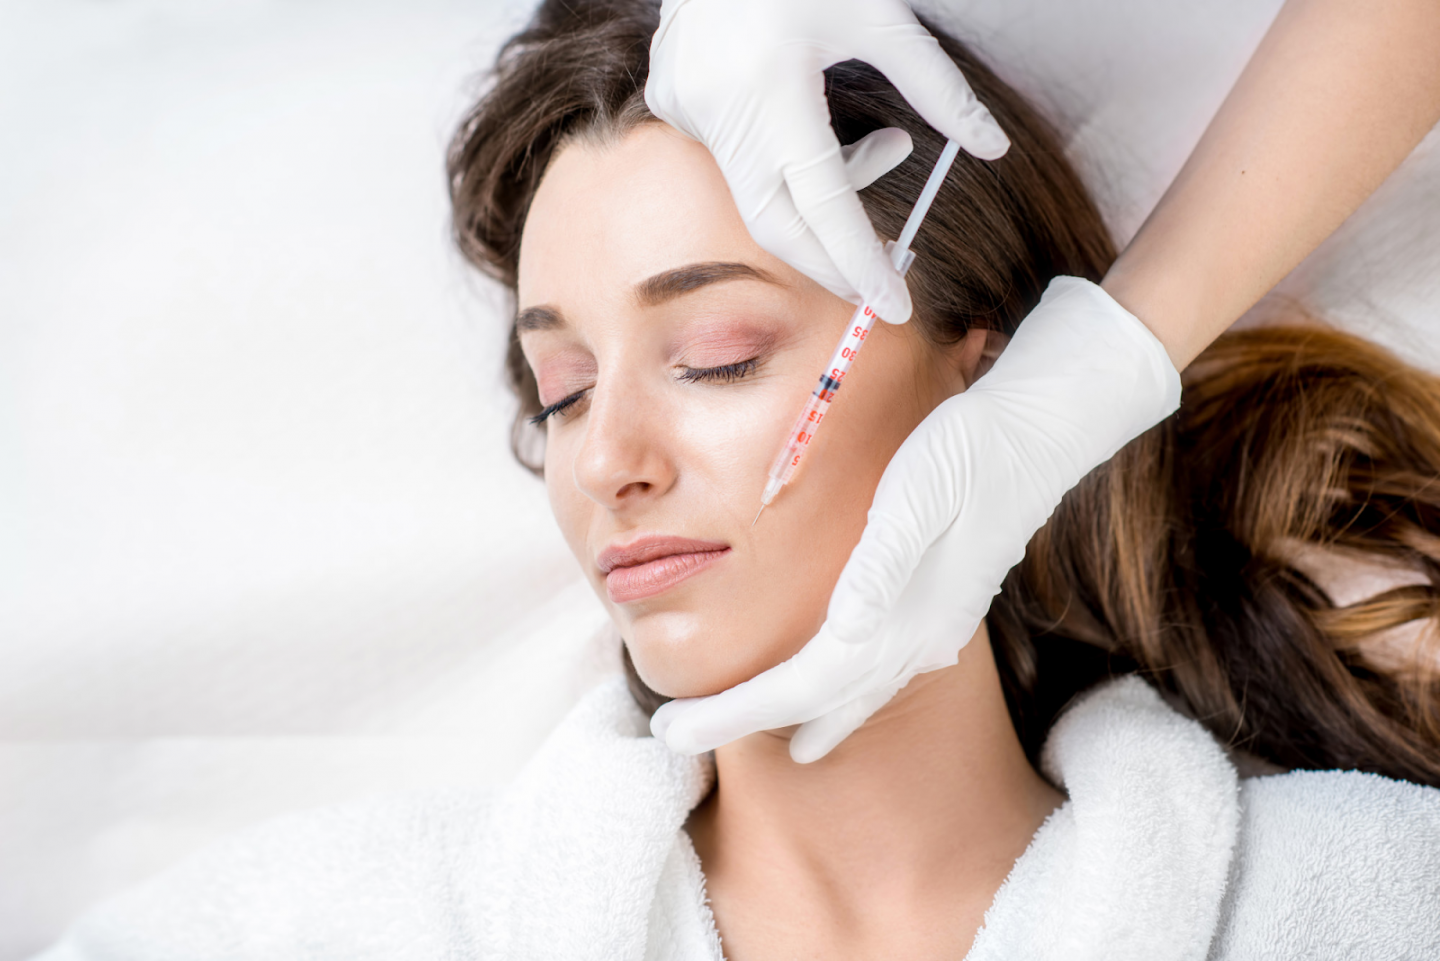 WRINKLE FREE: WHAT'S THE DIFFERENCE BETWEEN BOTOX VS DYSPORT?